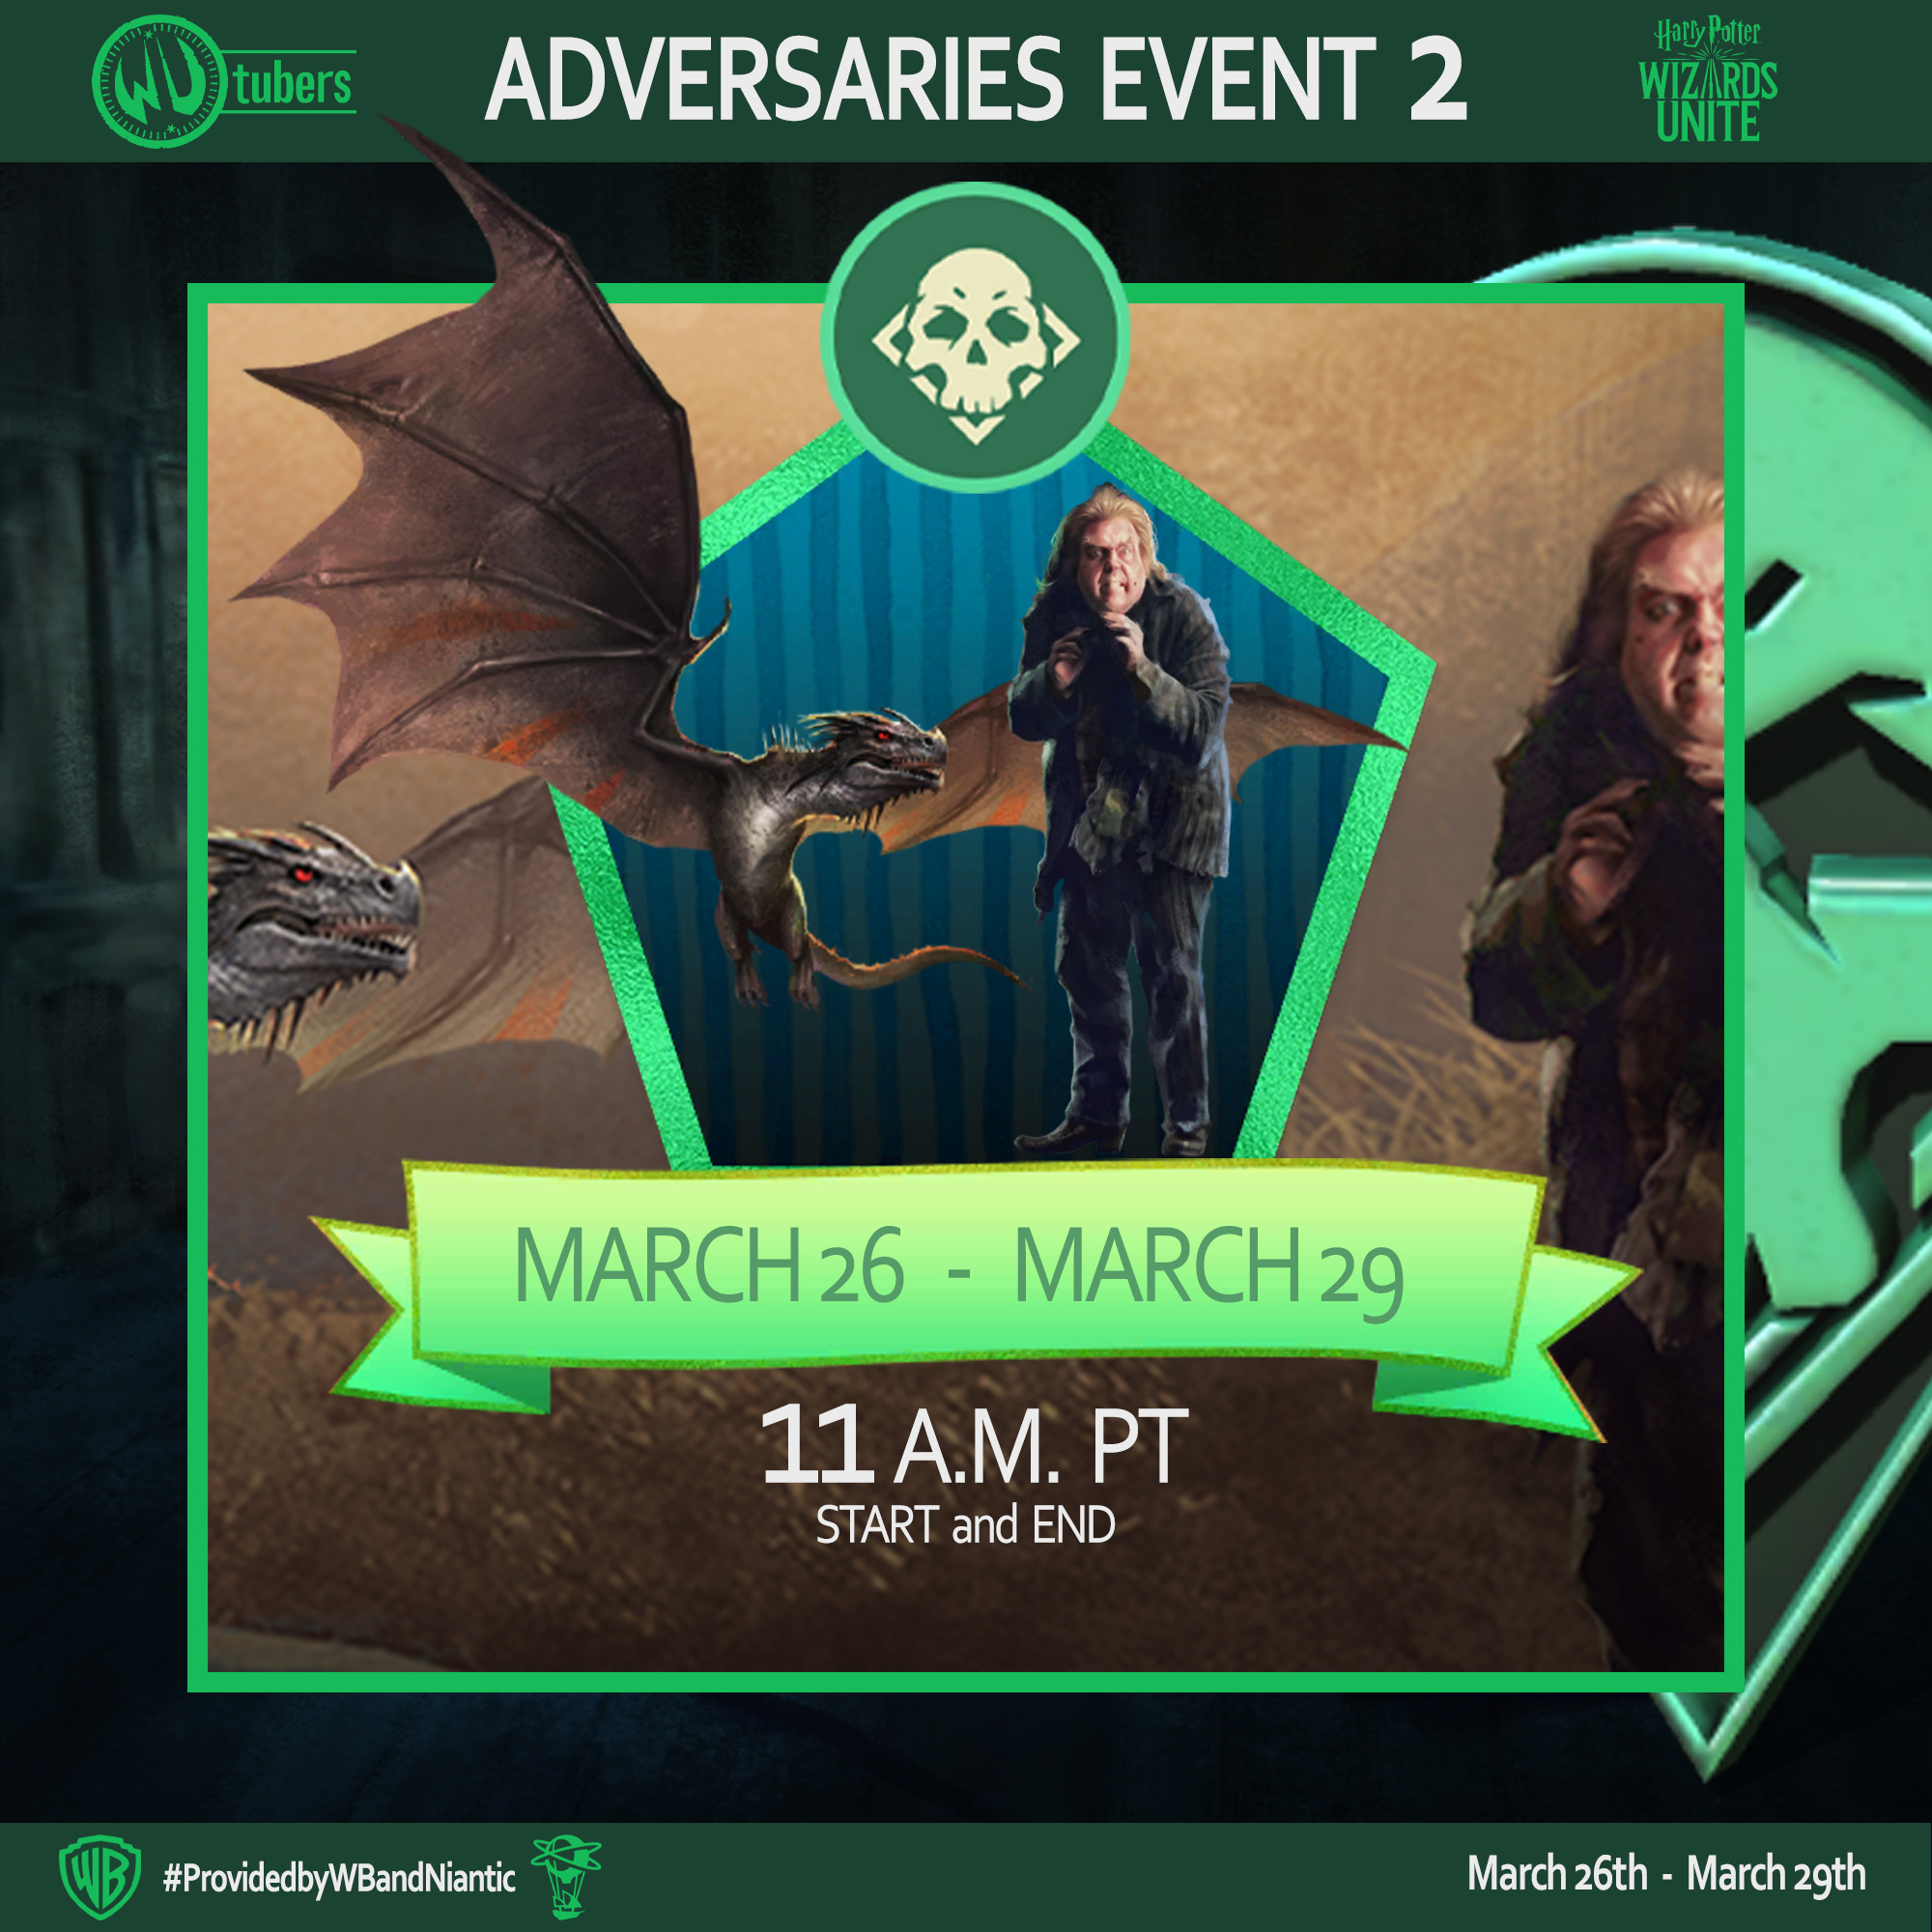 March_Adversaries_Event_2_Date.jpg